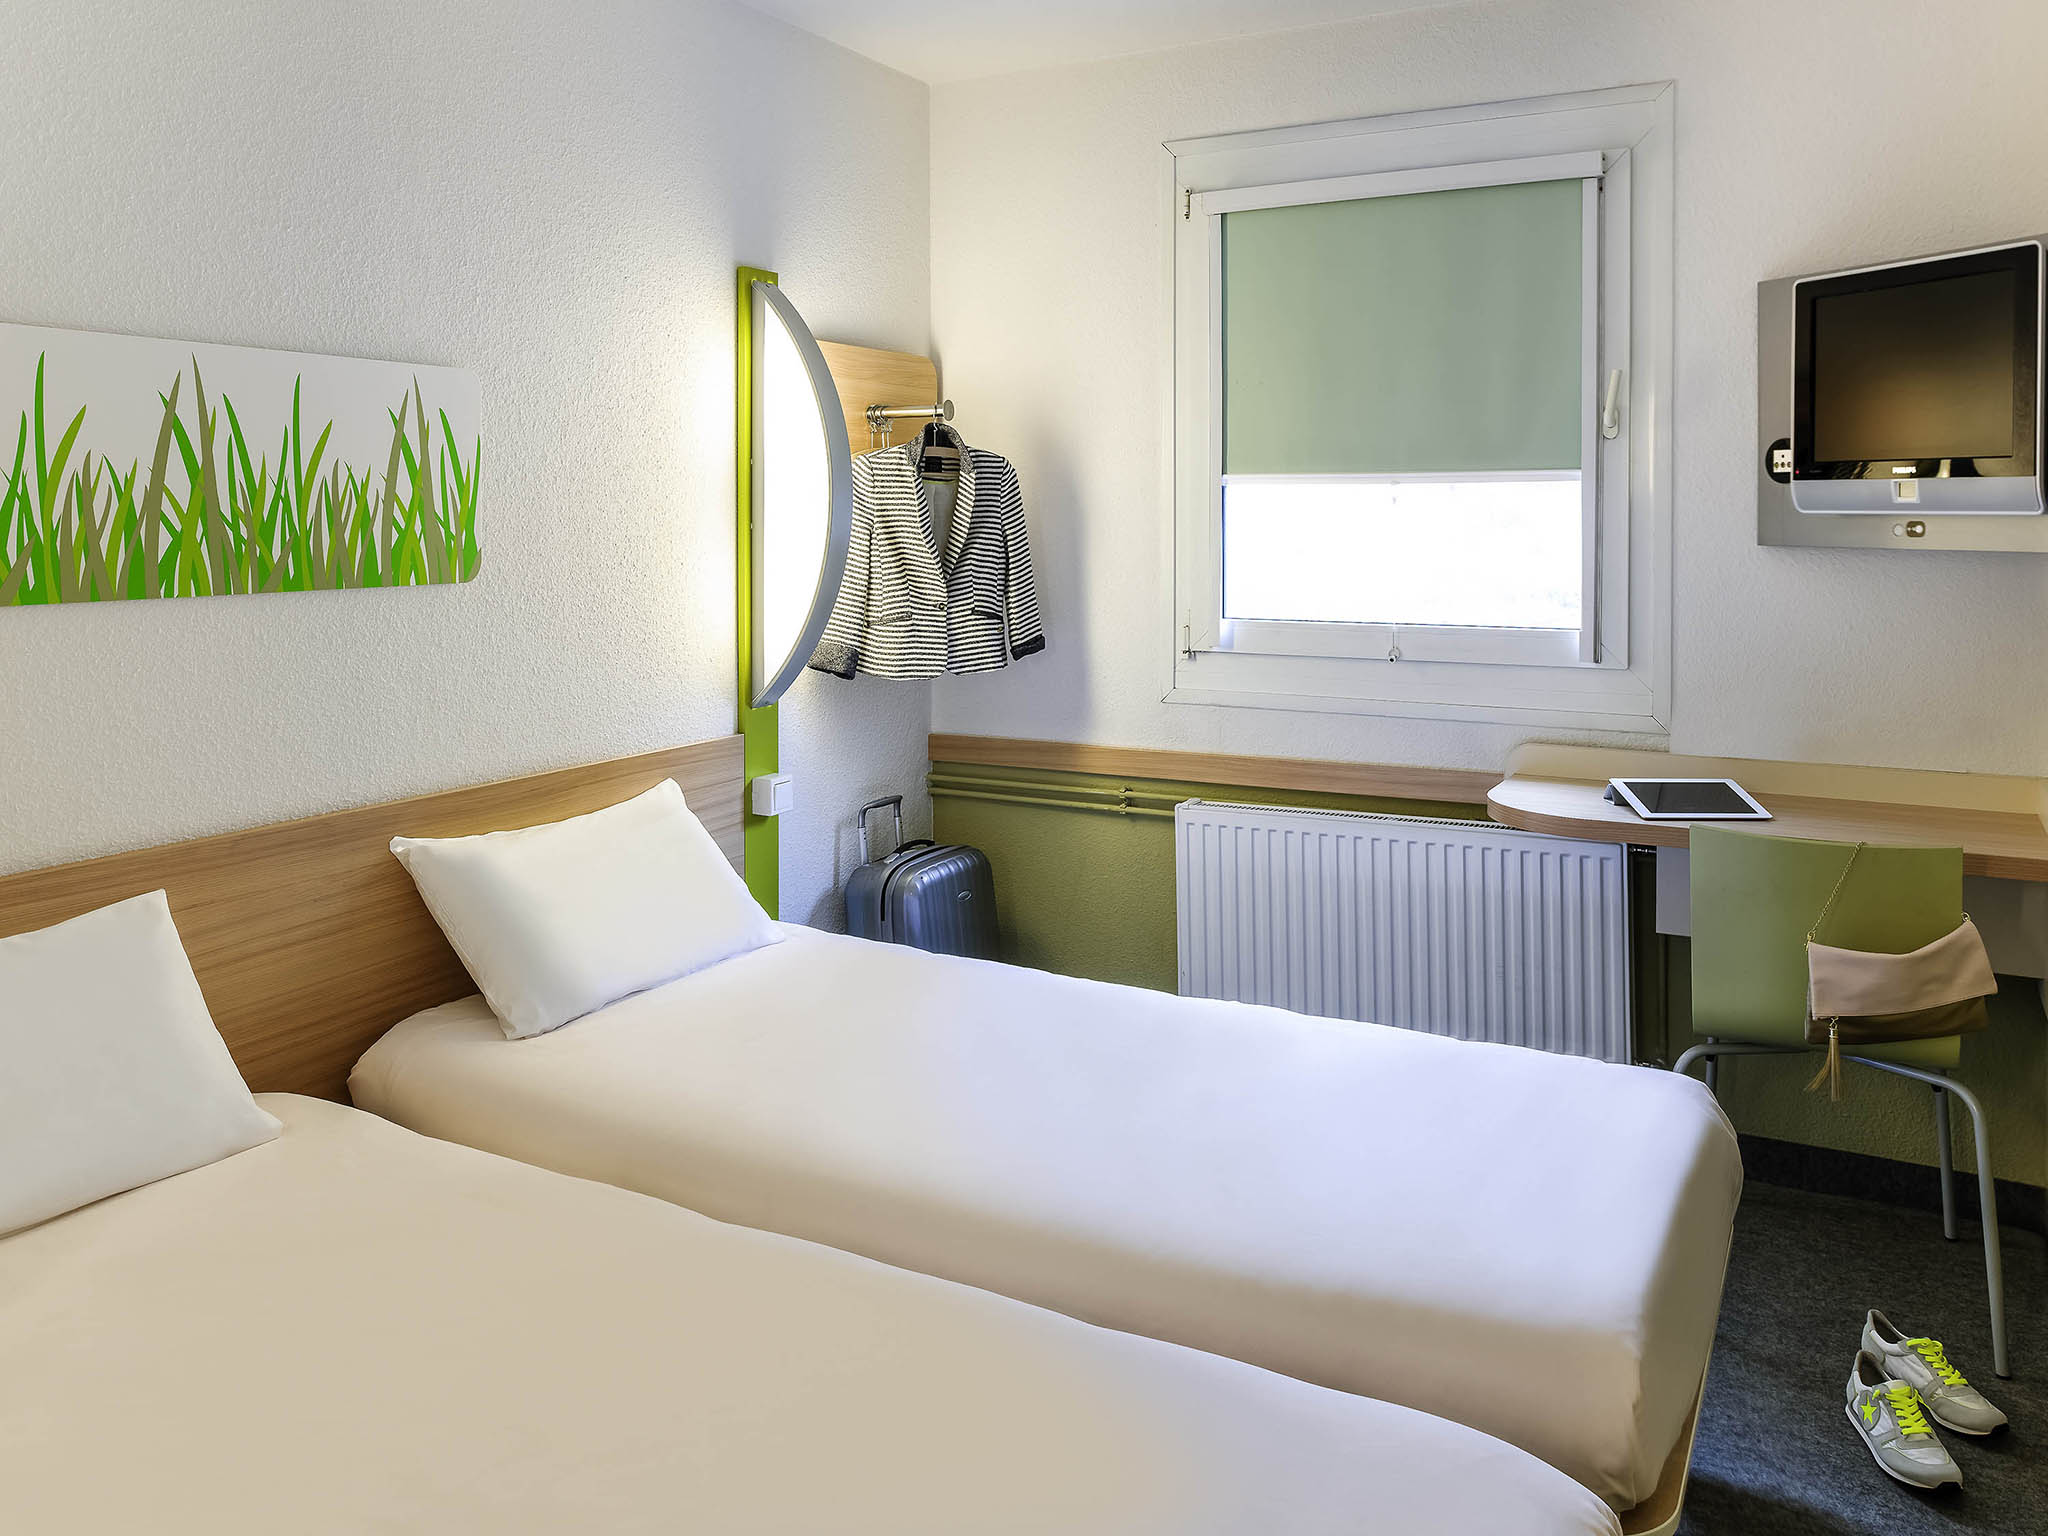 Chambres ibis budget le mans centre with ibis budget for Ibis budget douche dans la chambre